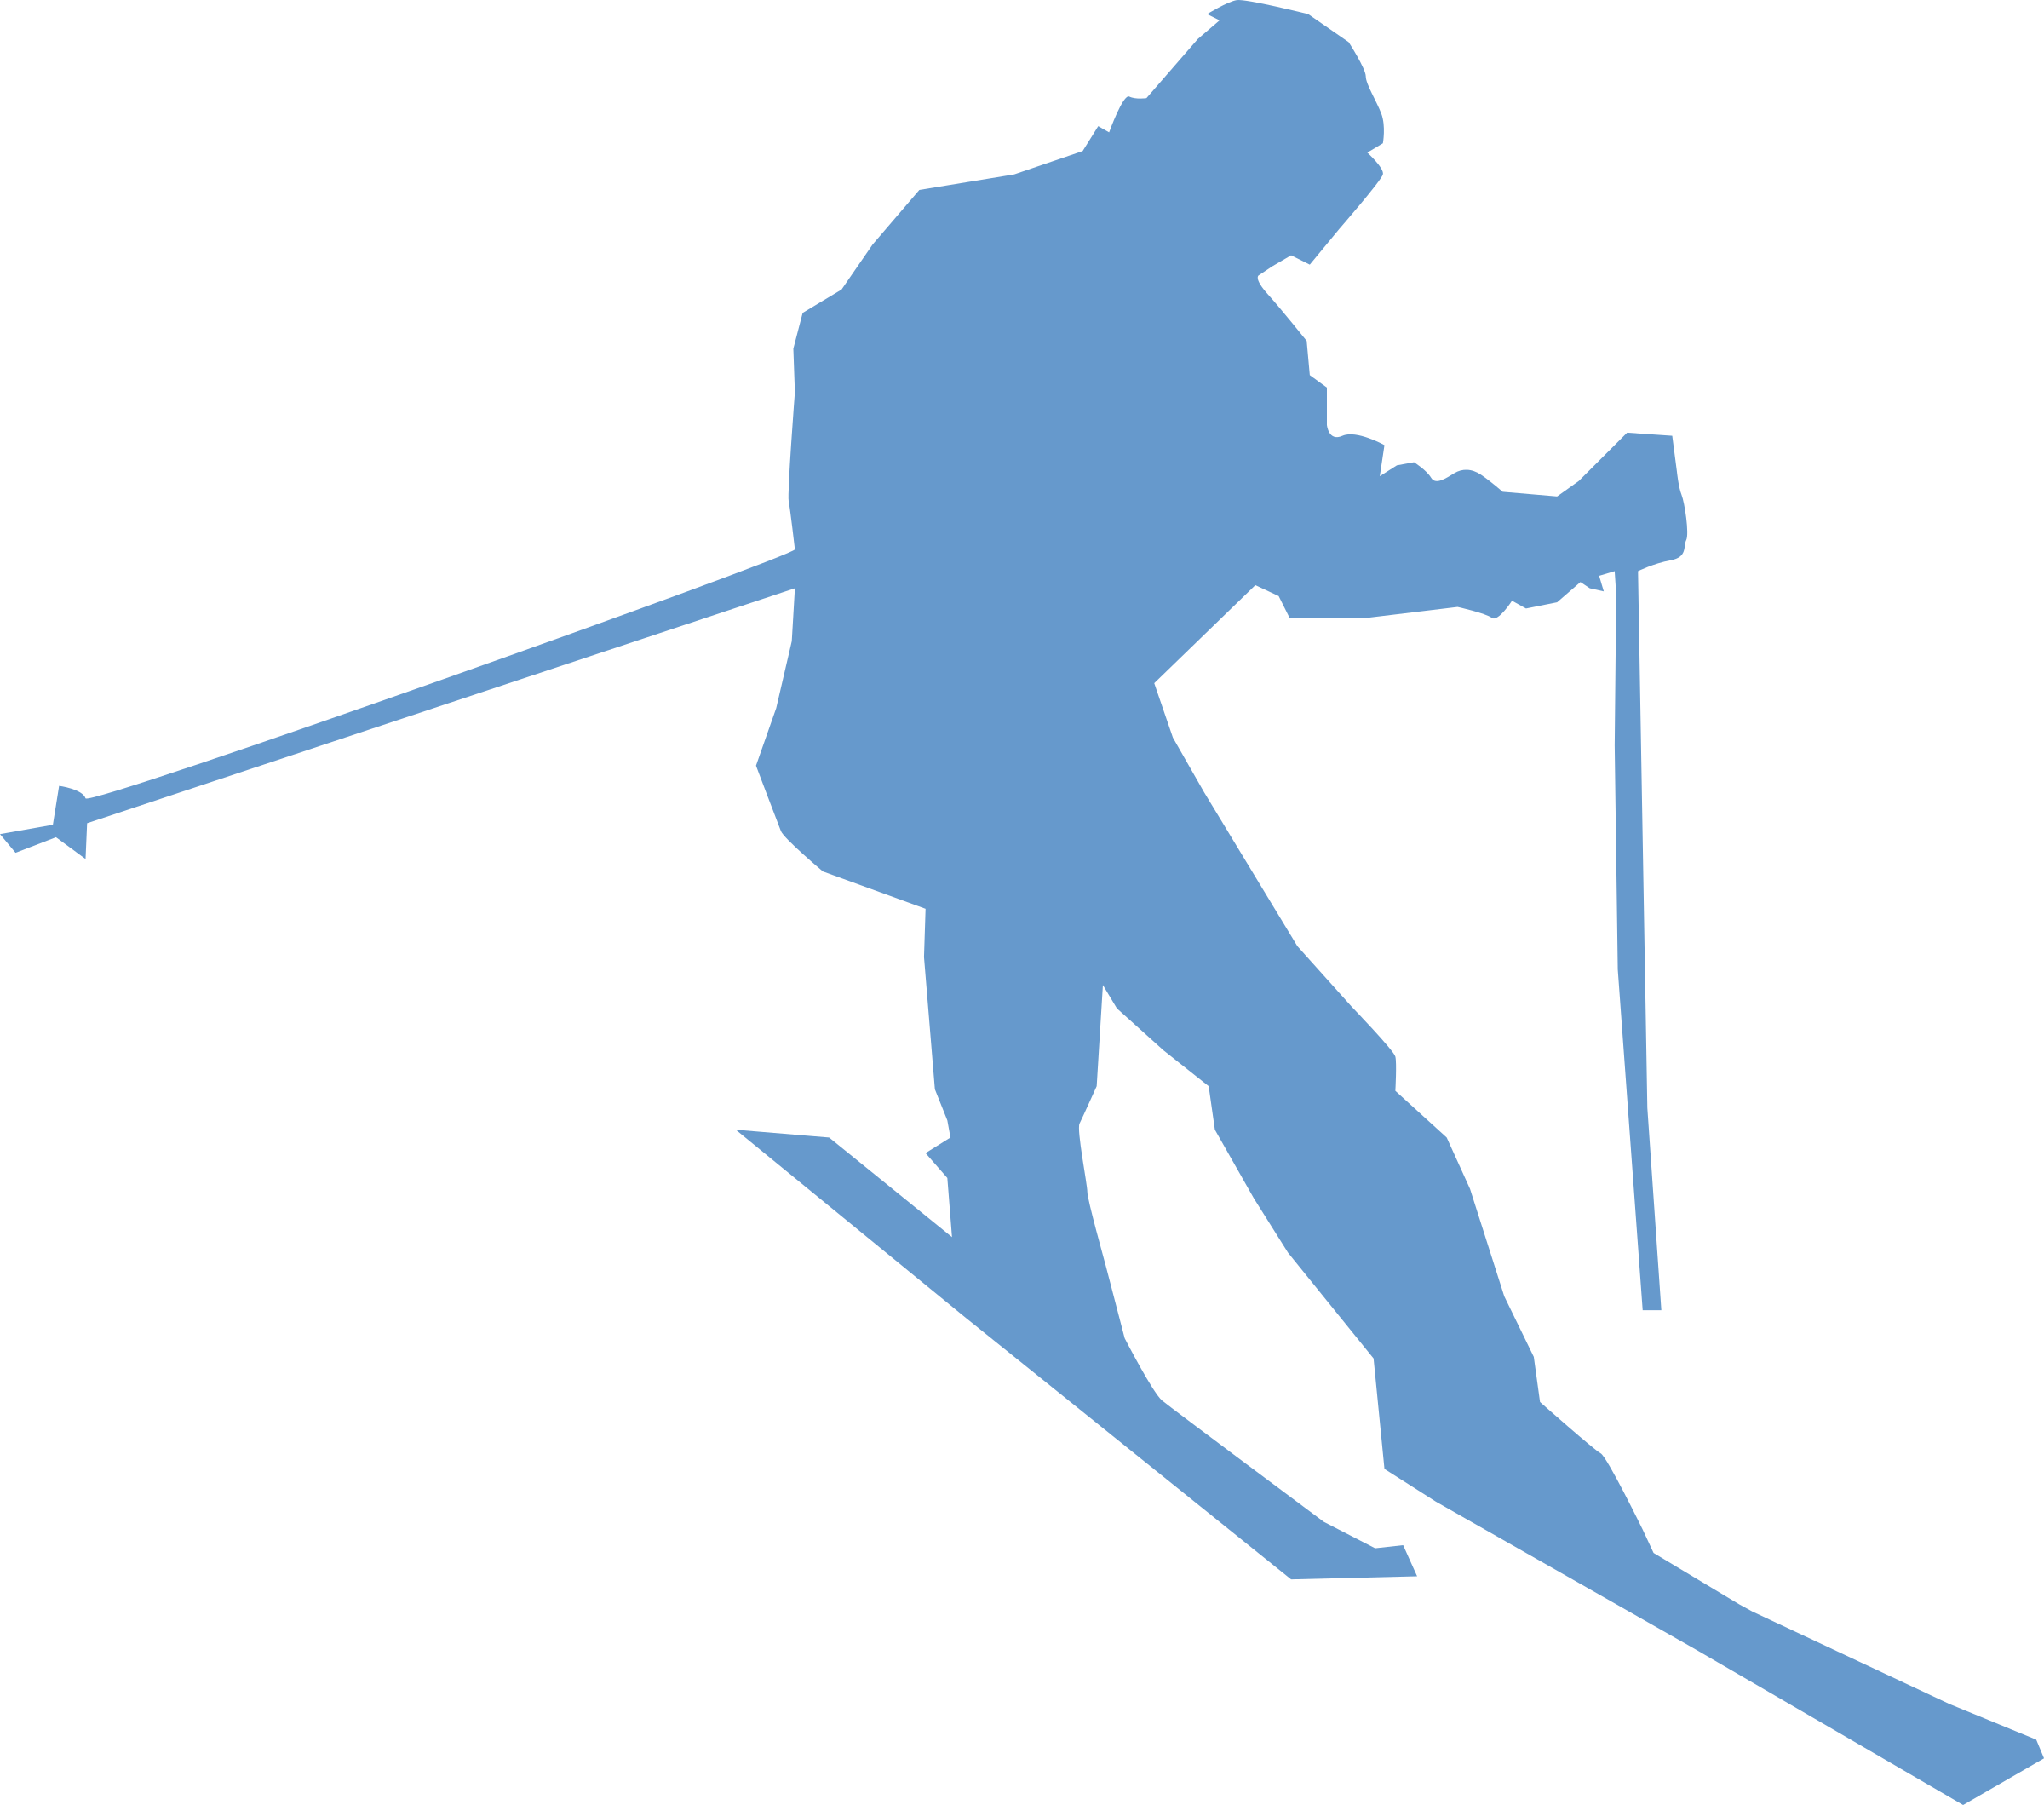 Skiing clipart skiing holiday. Ski silhoette icons png